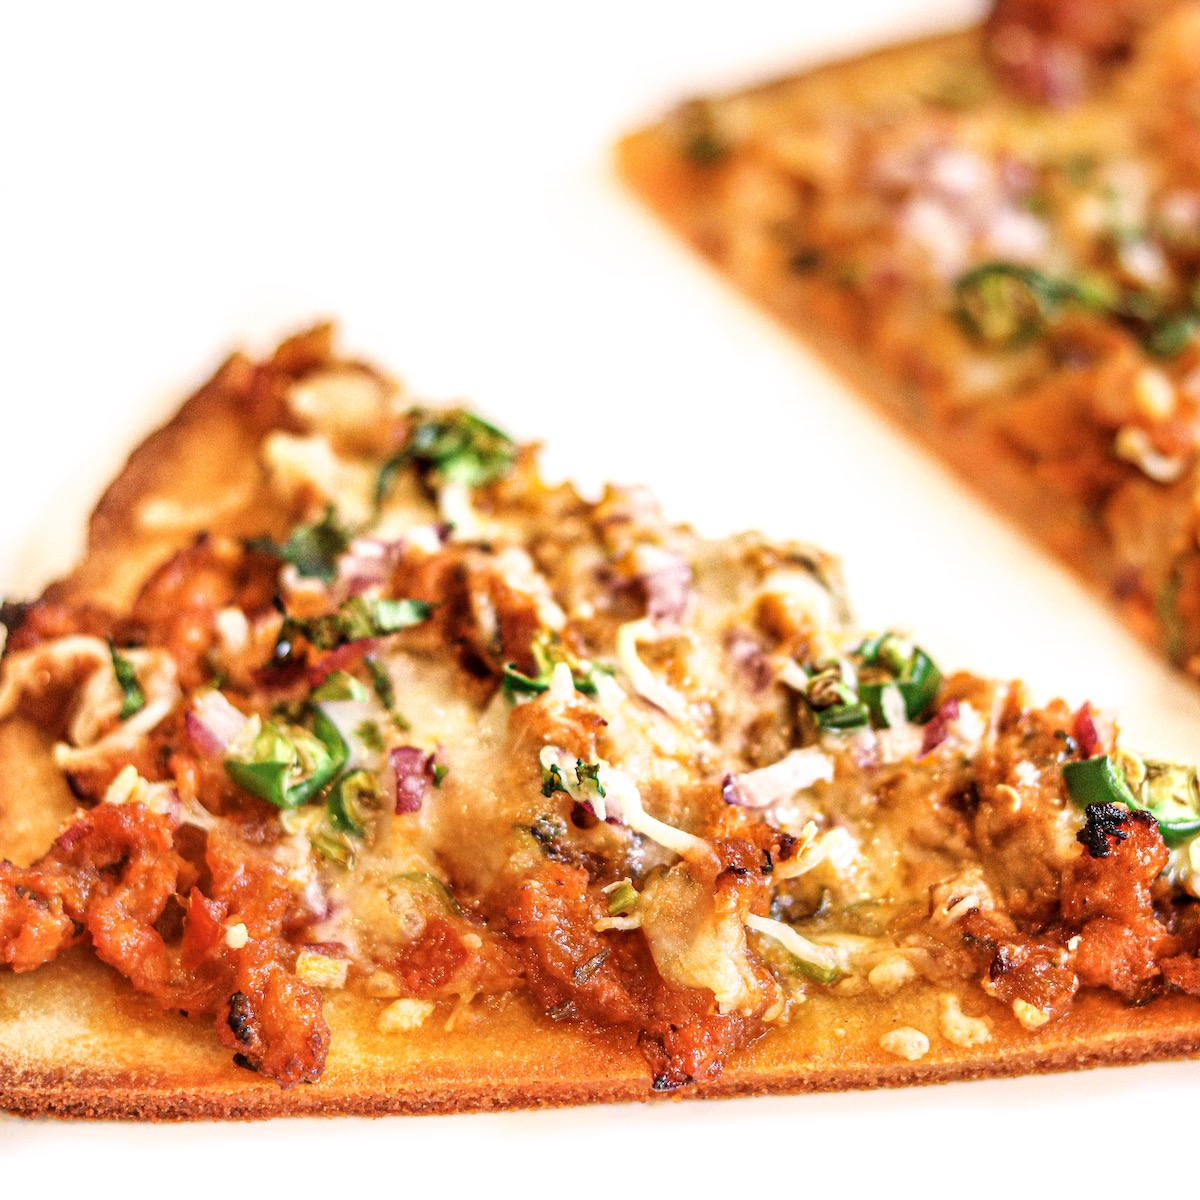 kheema pizza an indian pizza with chicken and spices on cauliflower crust